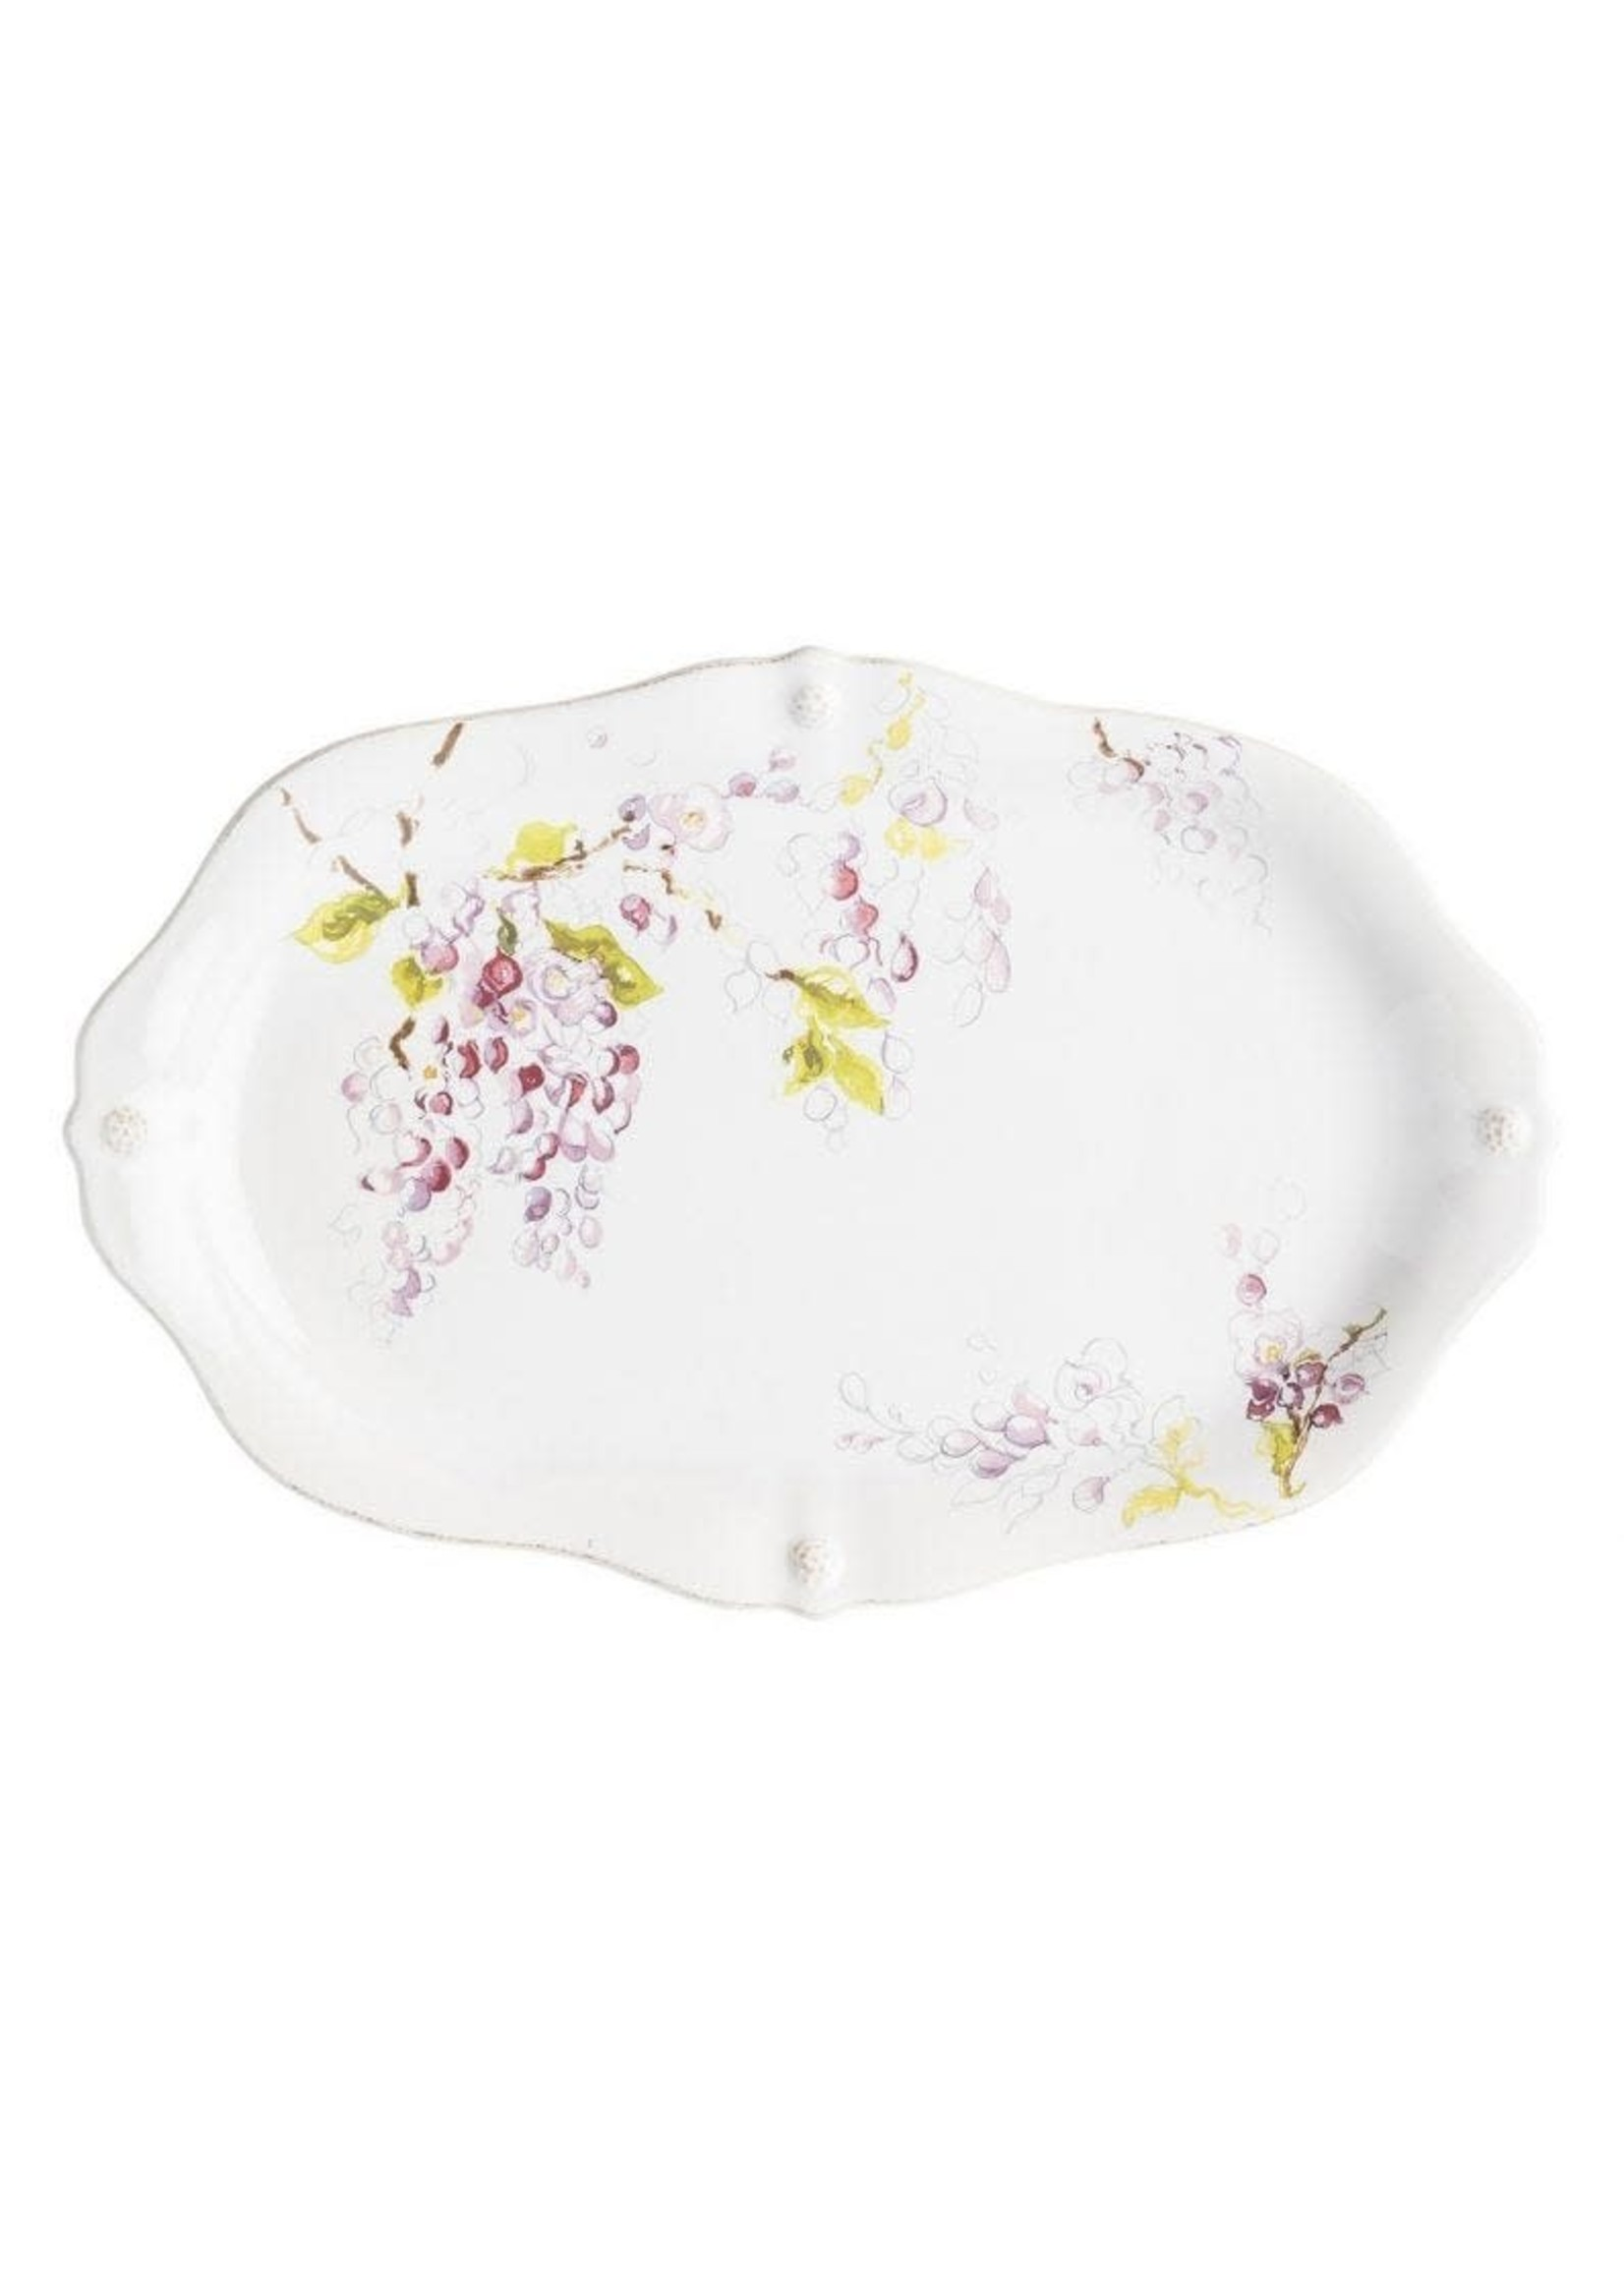 Juliska Berry & Thread Wisteria - Platter